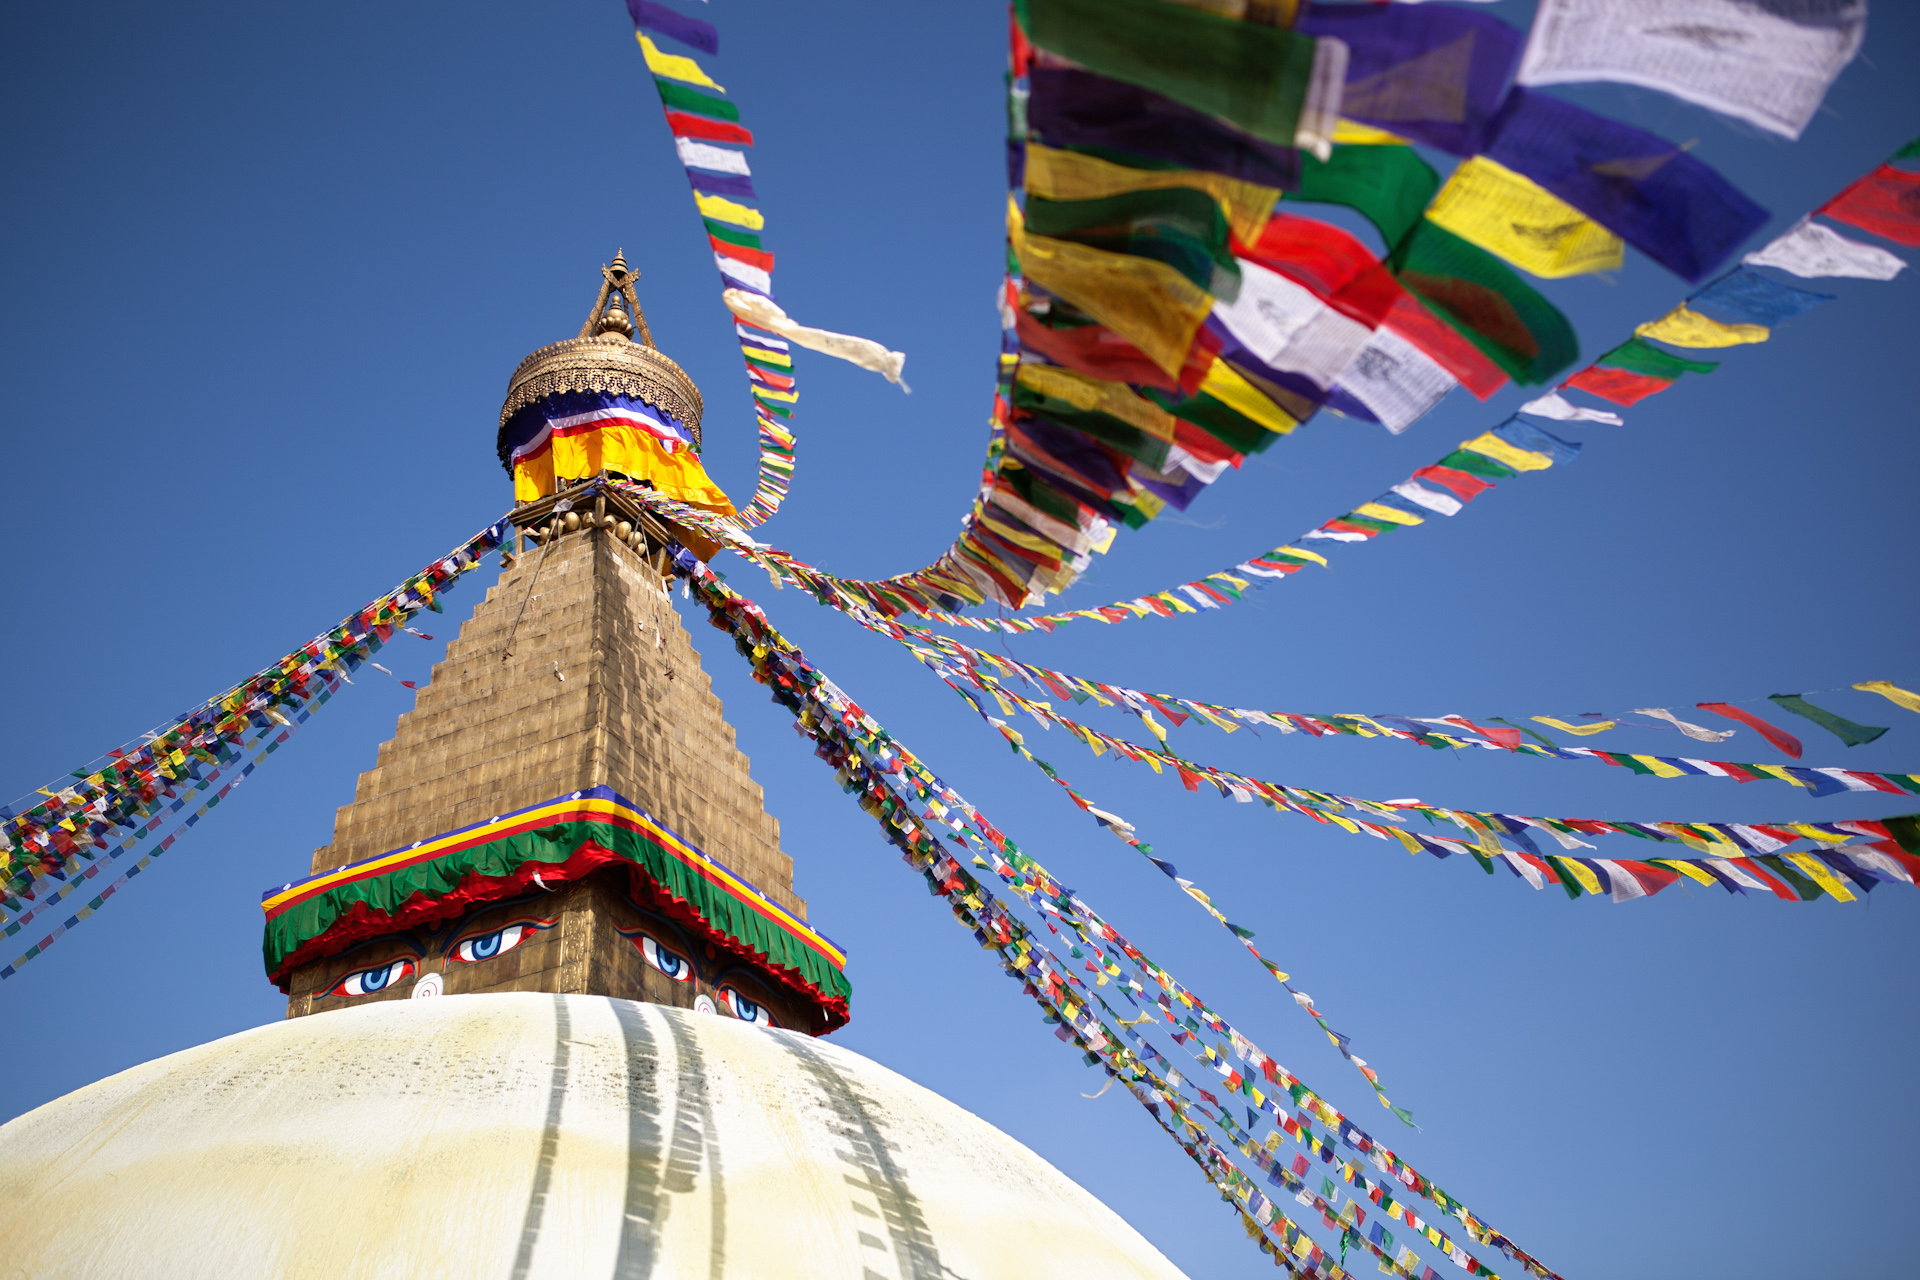 Nepal-Kathmandu-Travel-Boudhanath-Buddhism-Temple-Prayer-Flags.JPG